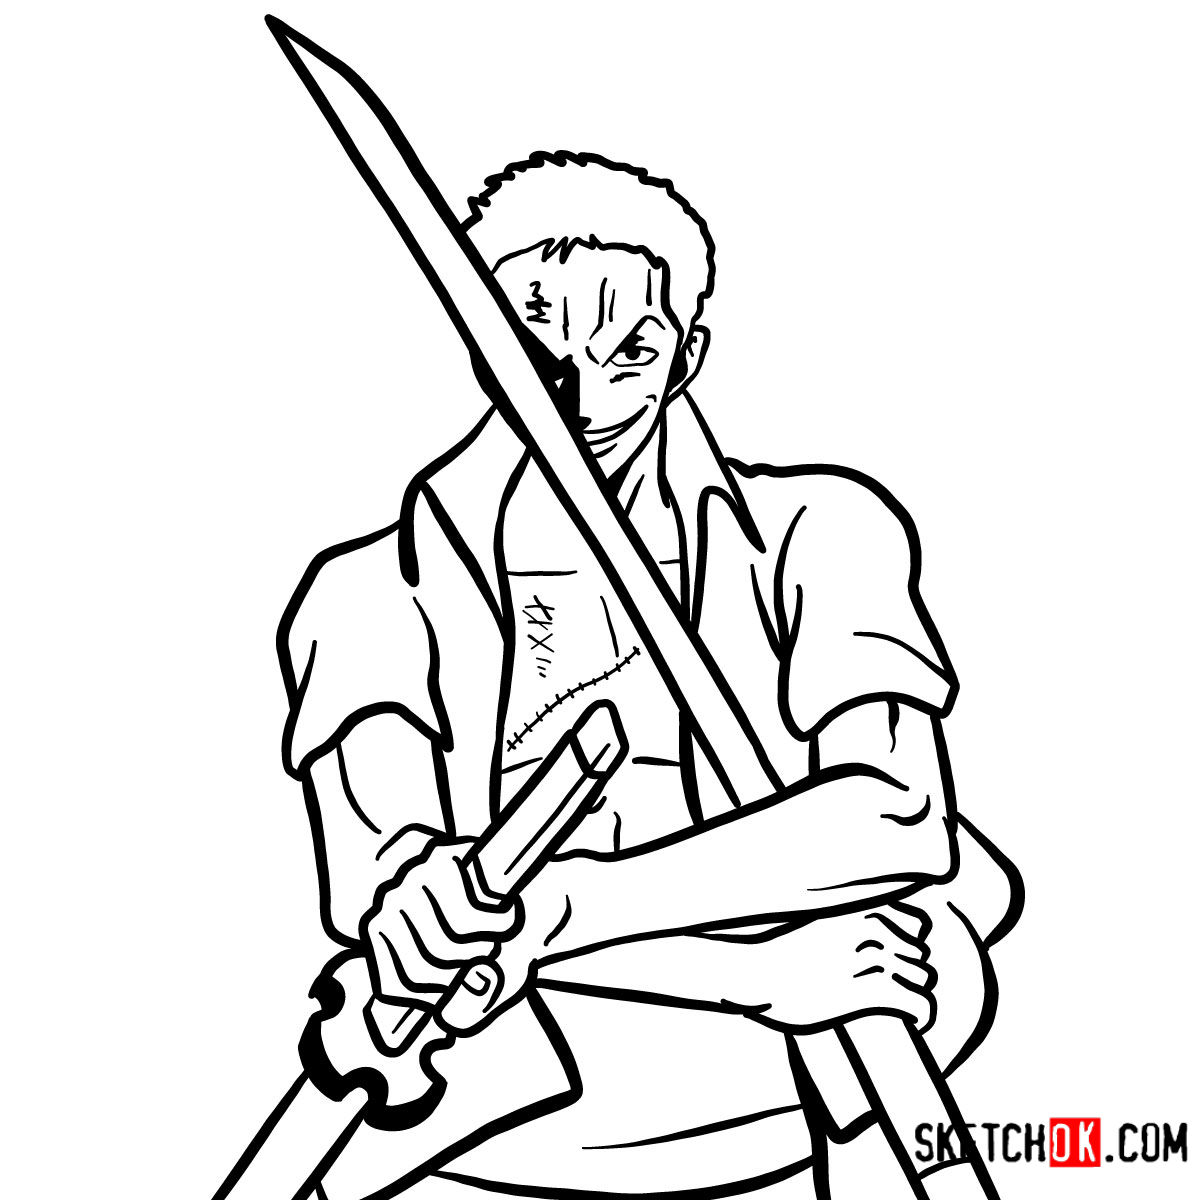 How to draw Roronoa Zoro with swords